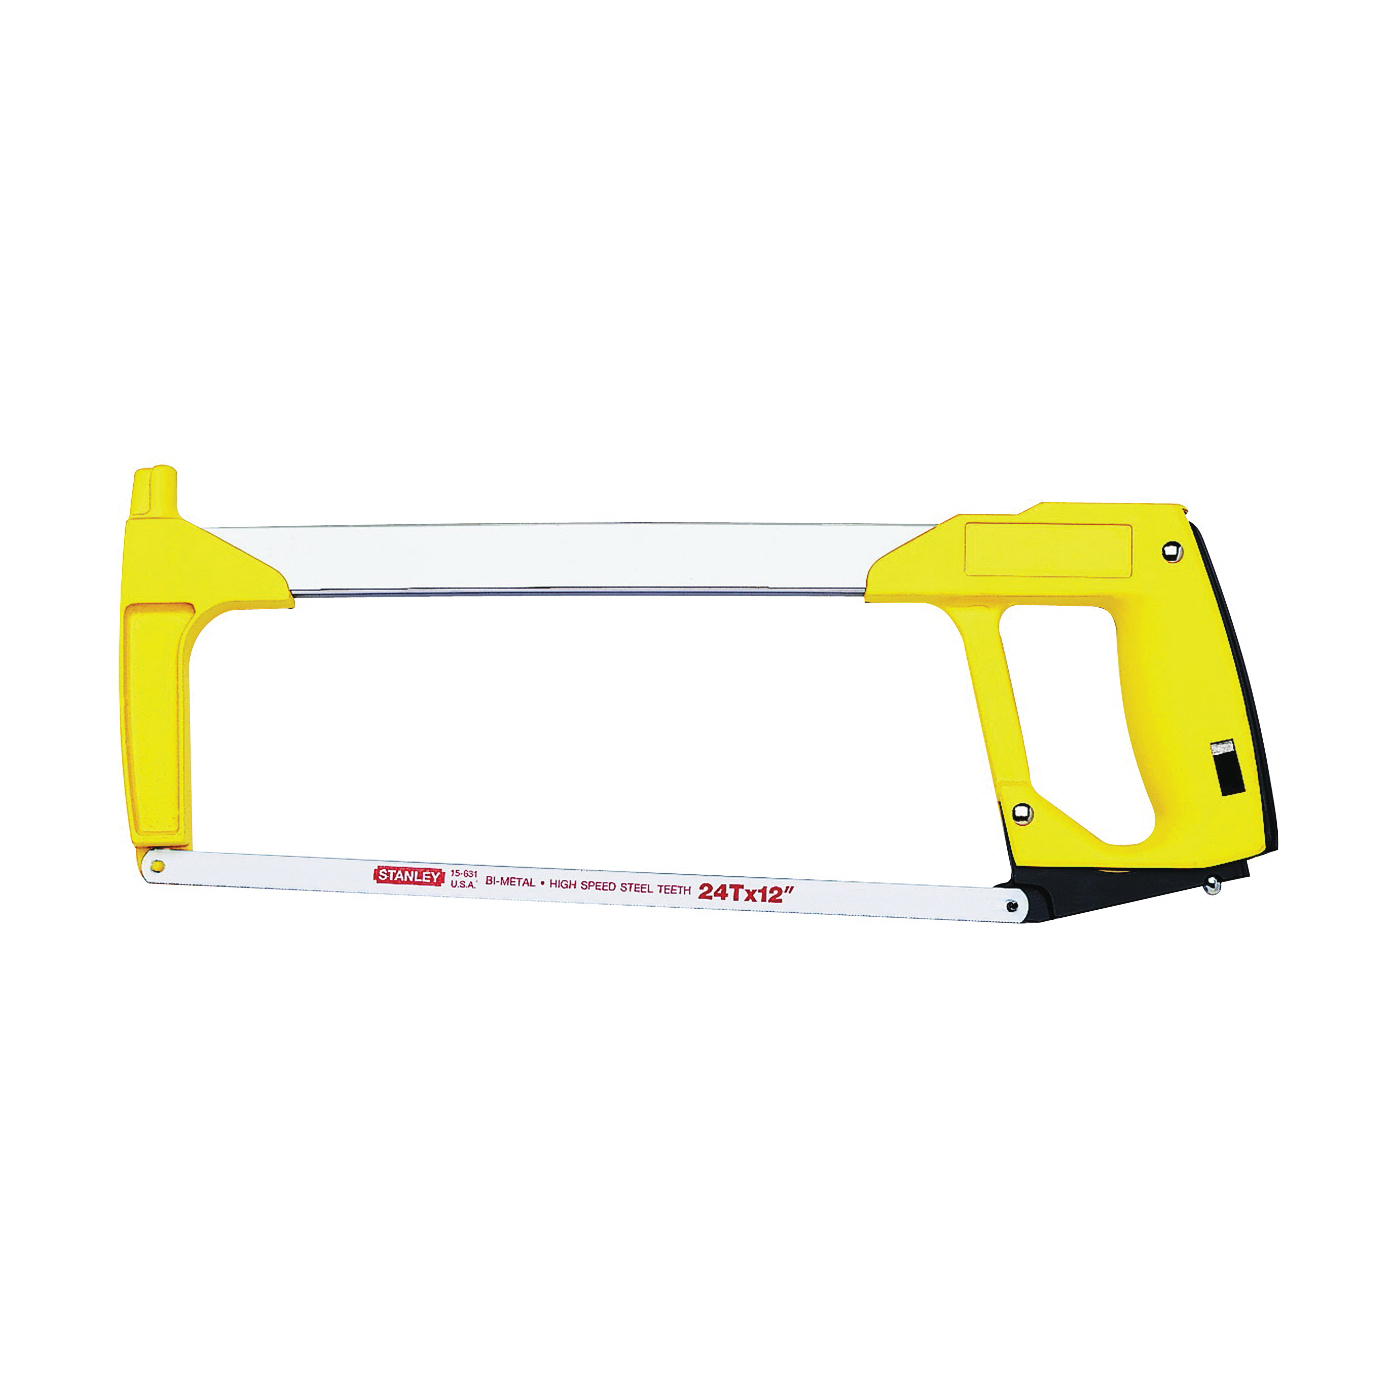 Picture of STANLEY 15-113 Hacksaw, 12 in L Blade, 24 TPI, 3-7/8 in D Throat, Plastic/Rubber Handle